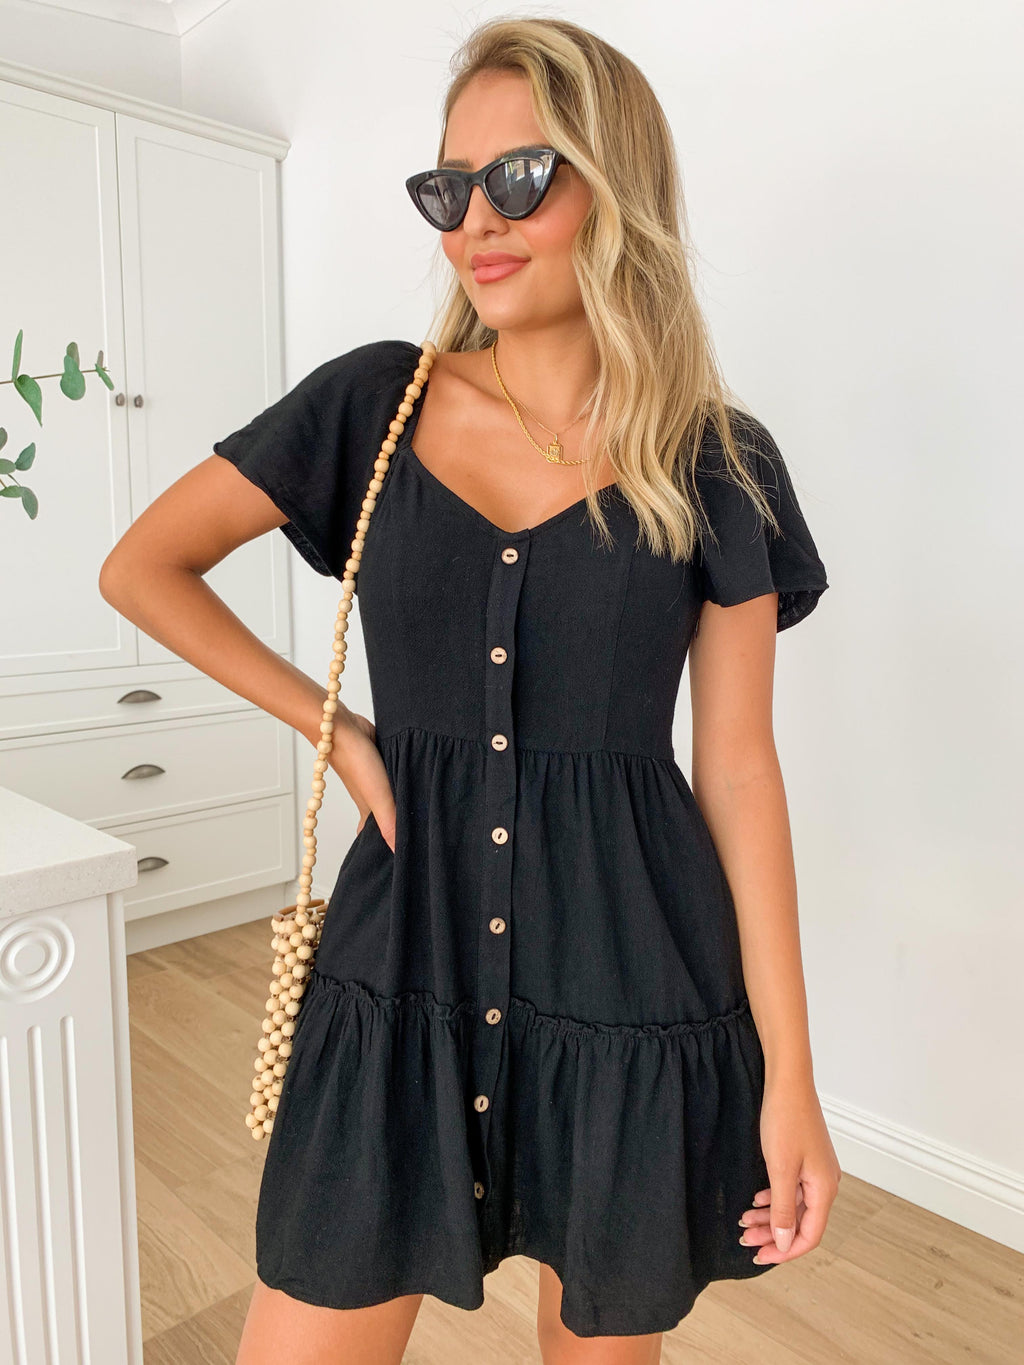 Molly Love Dress